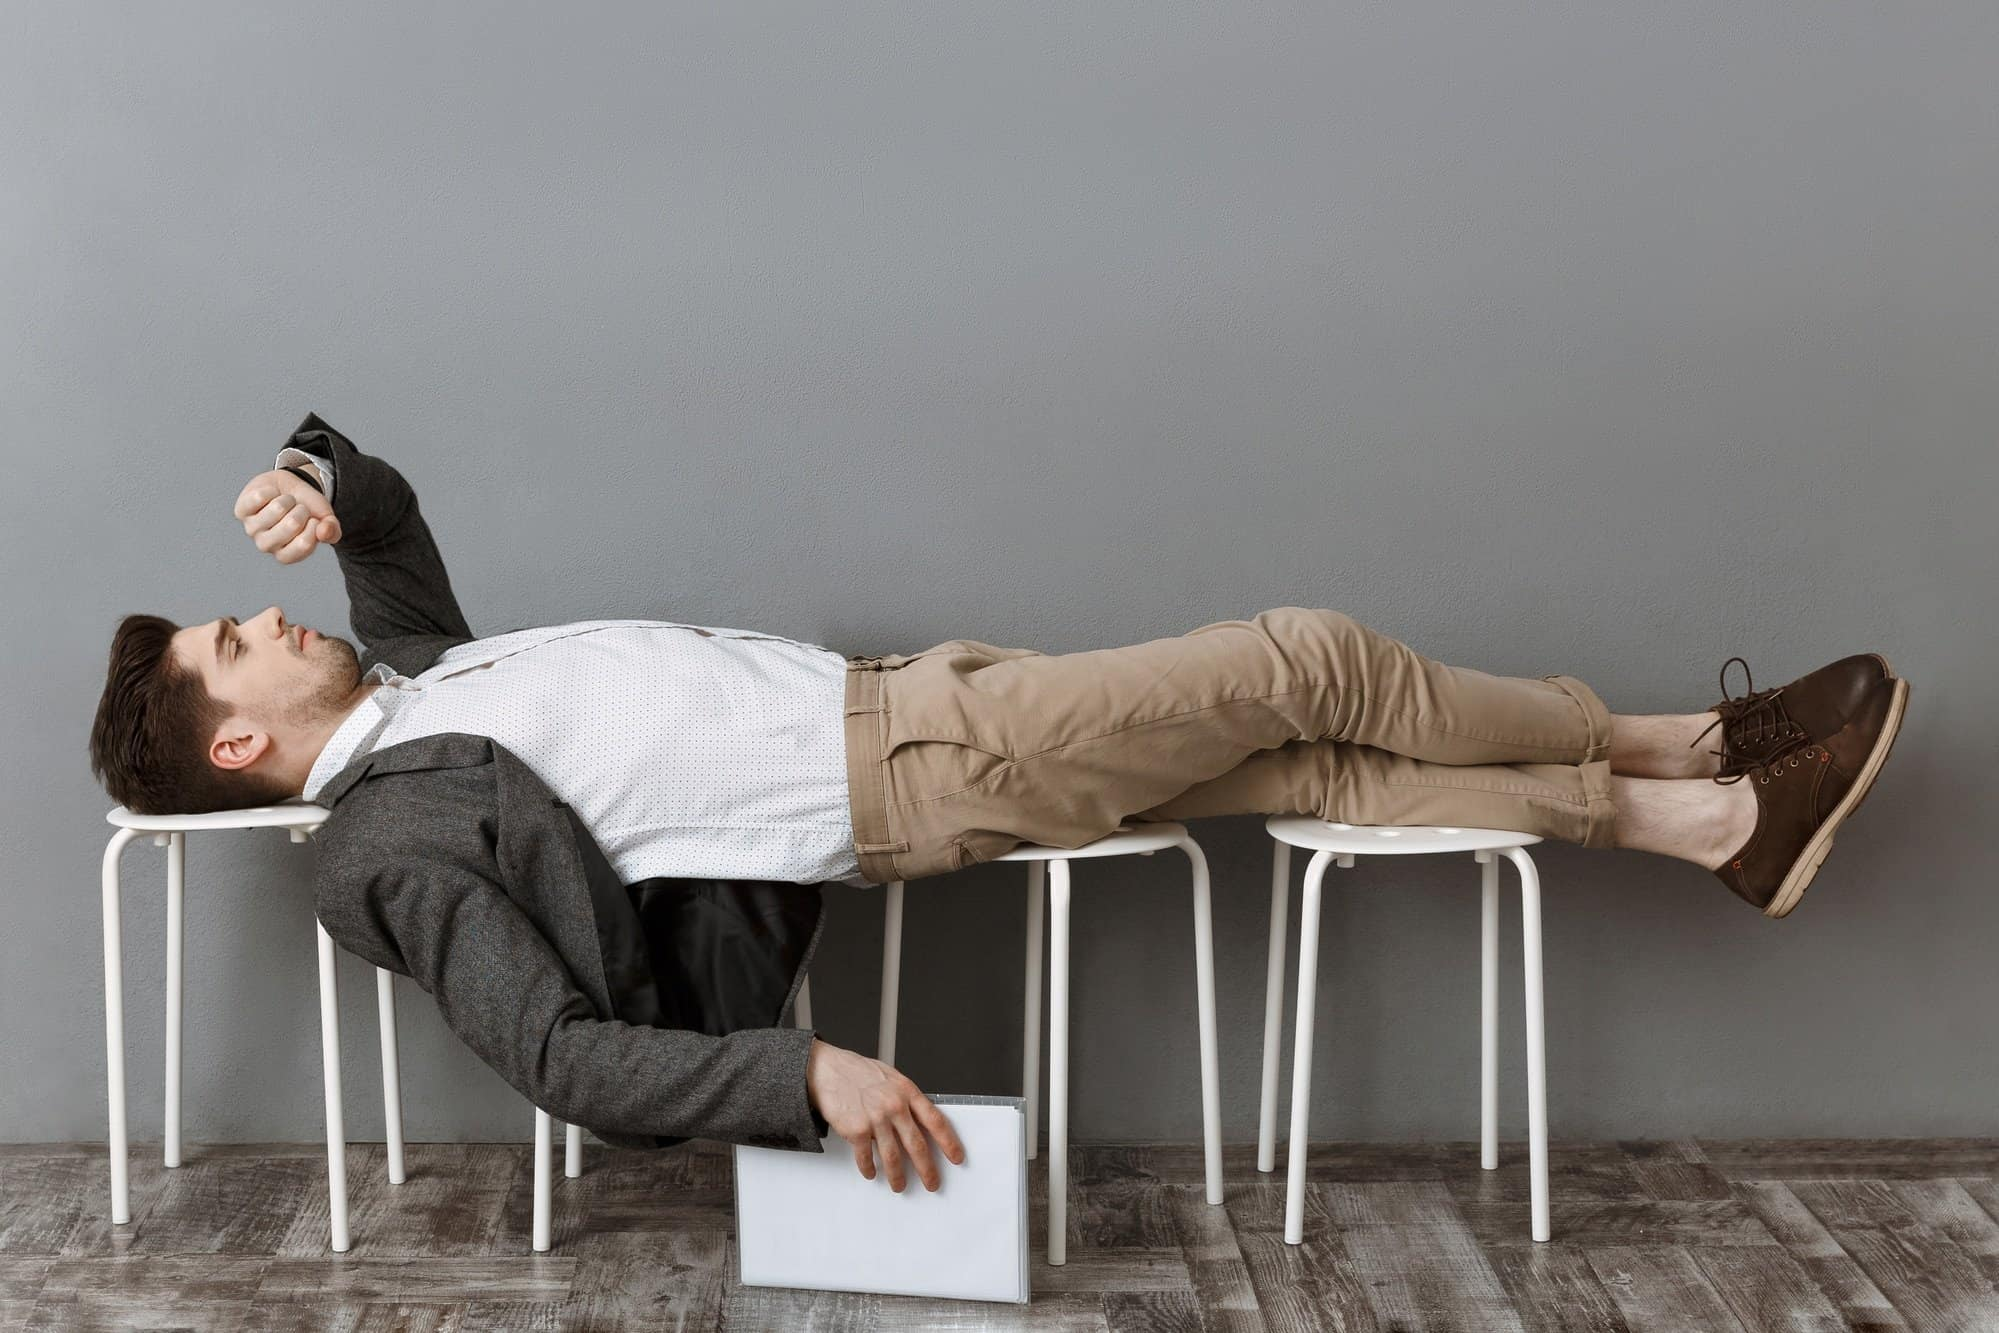 Employee with documents checking time while lying on chairs waiting for work